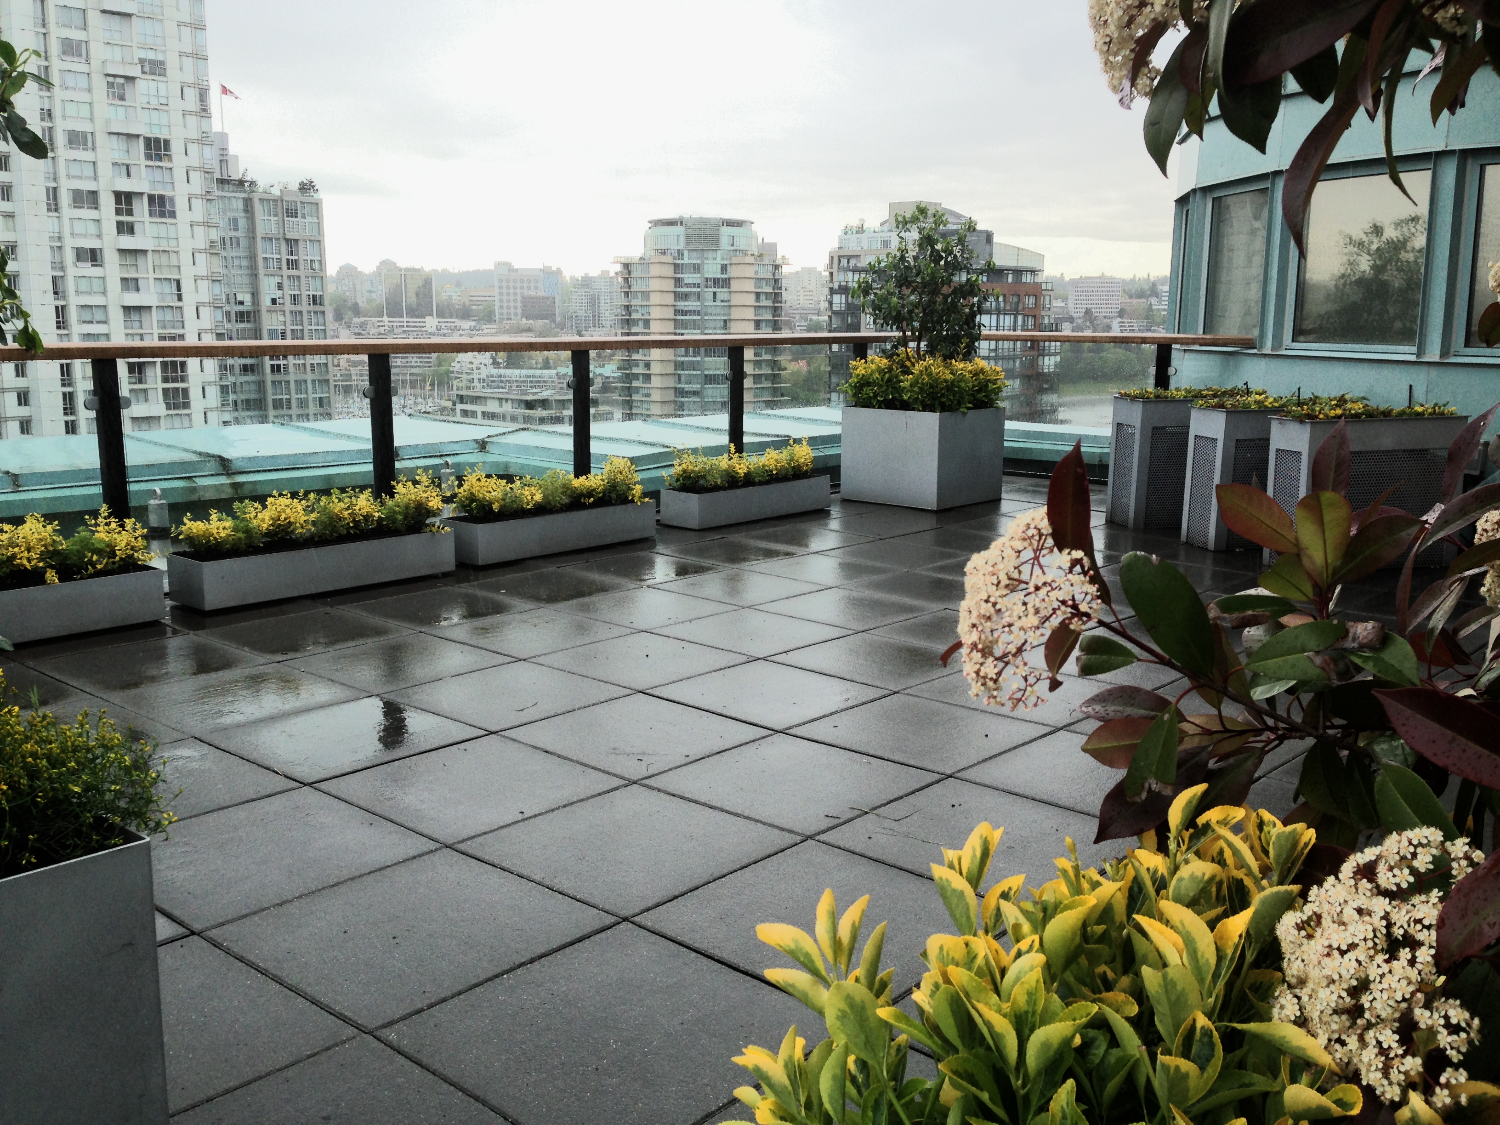 Penthouse and Condo Garden Spaces